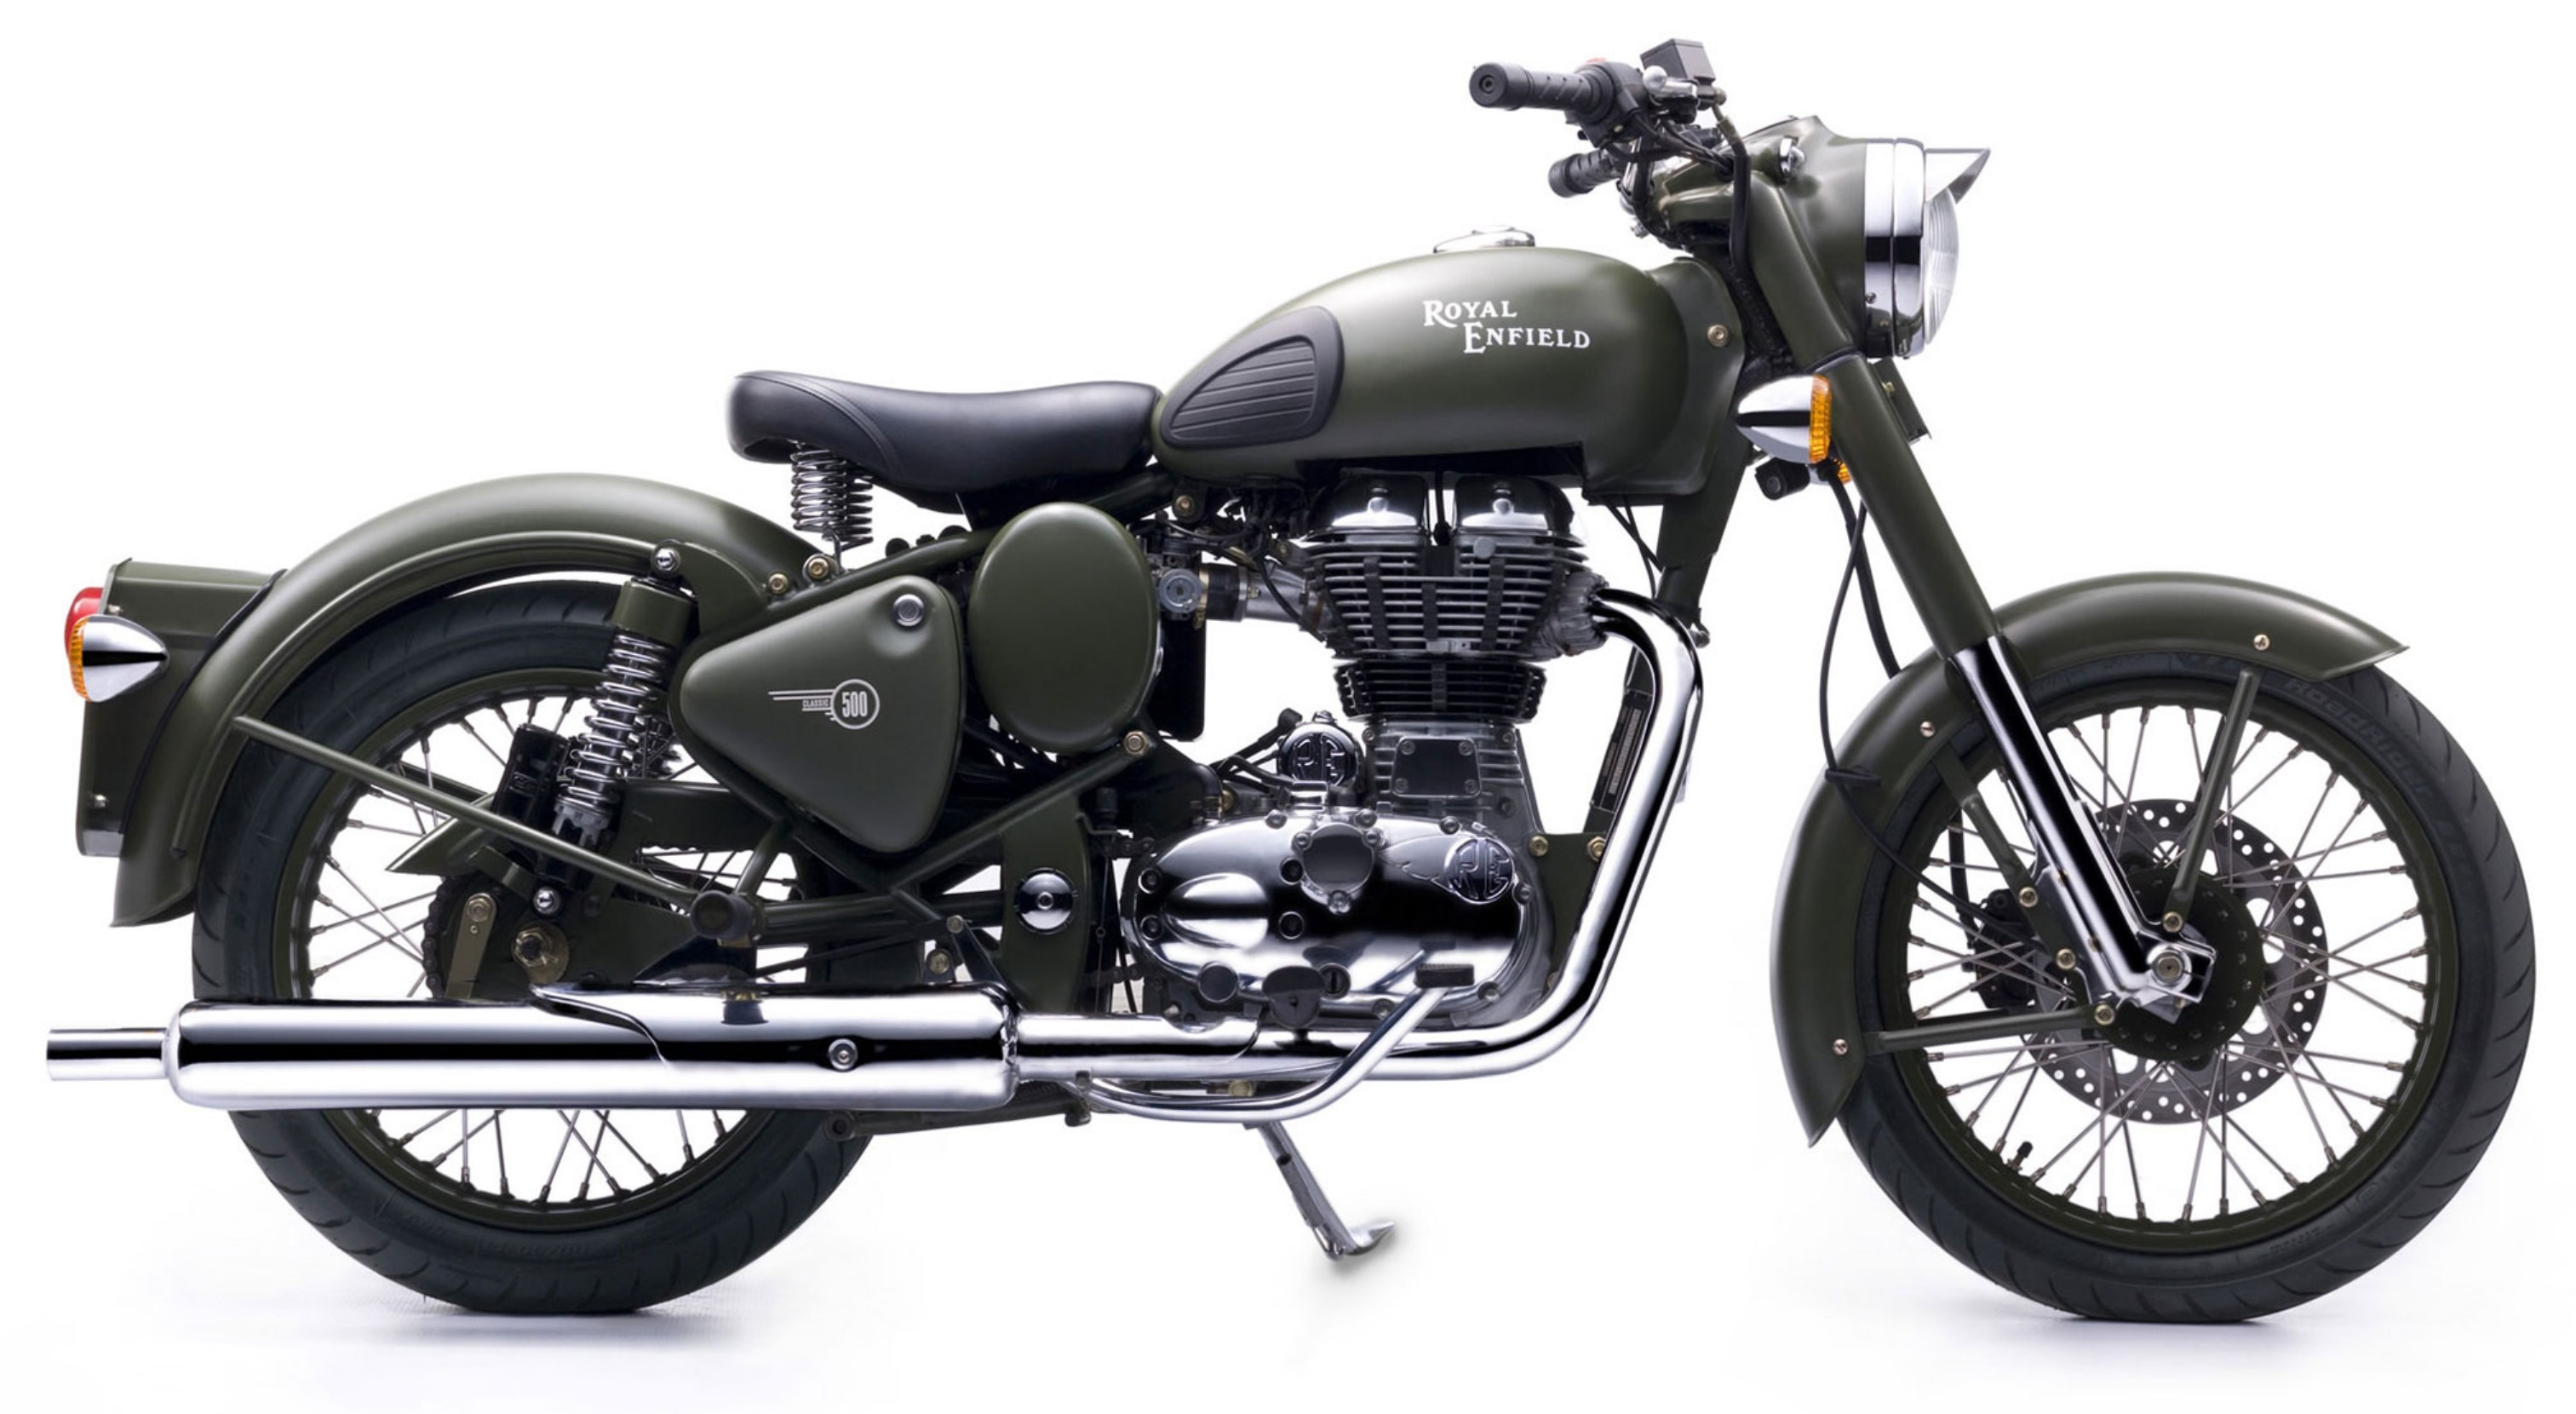 Bullet Bike Images In Hd: Royal Enfield Wallpapers (67+ Images